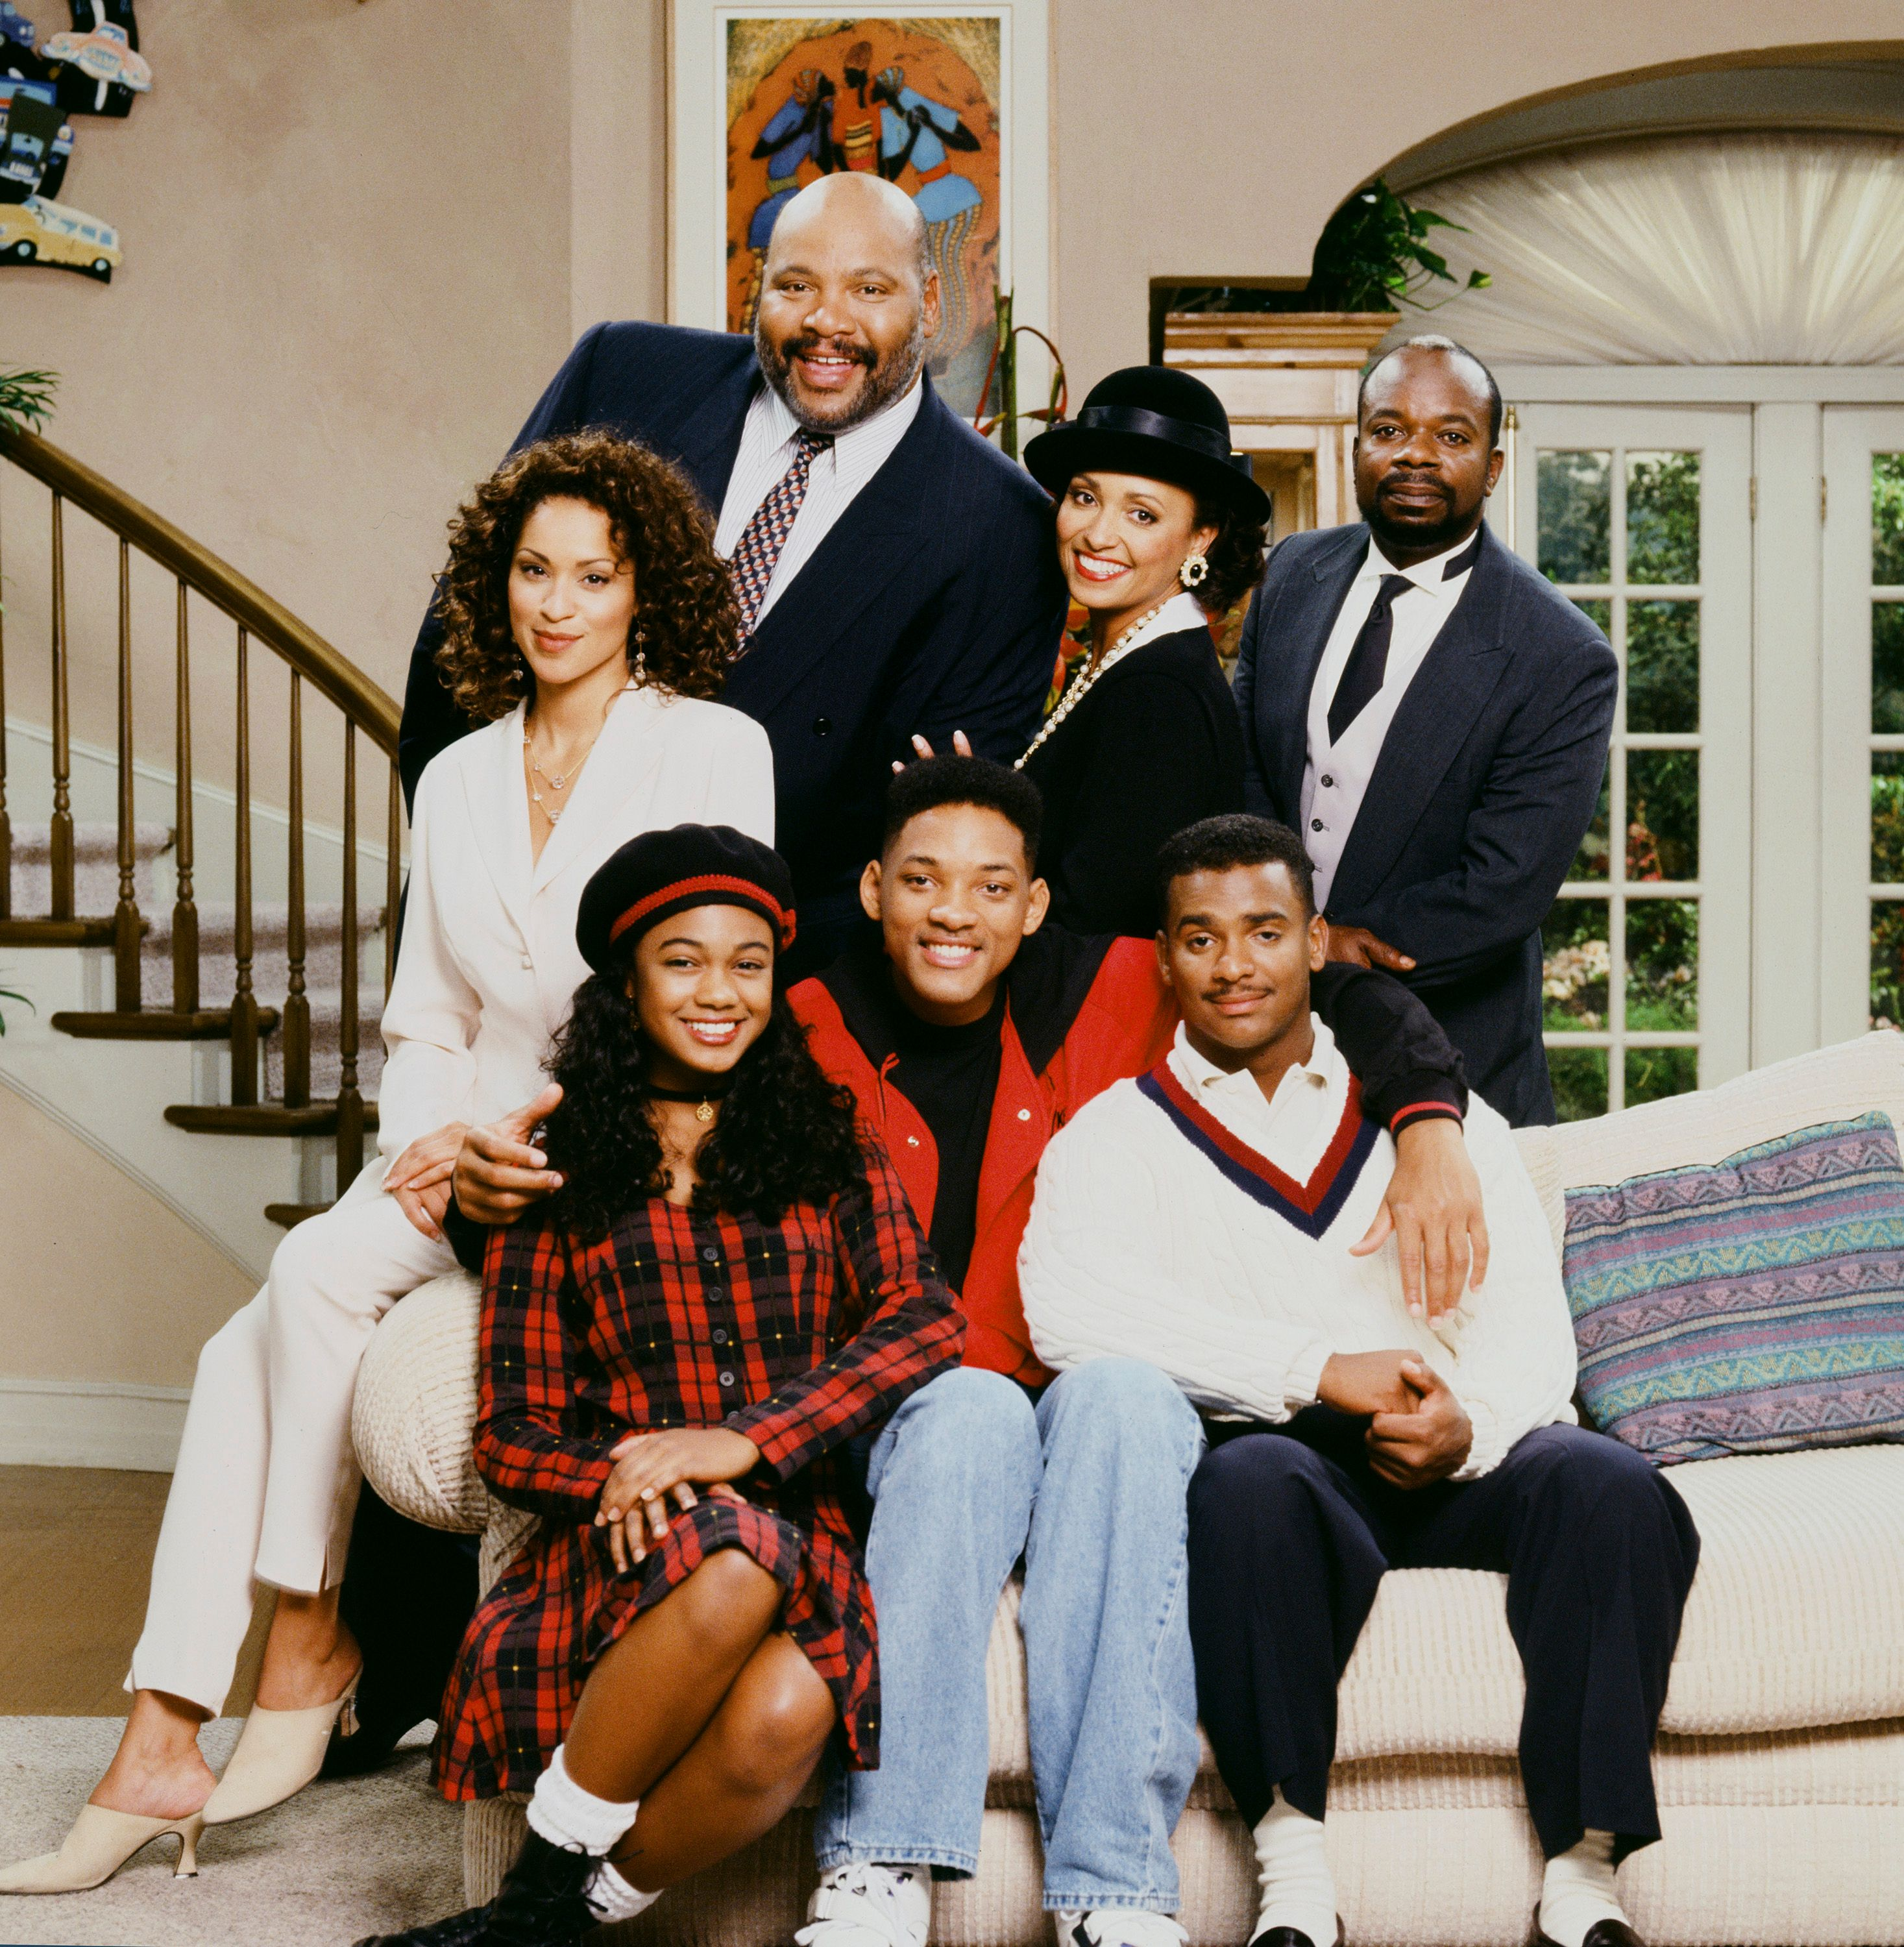 """Karyn Parsons as Hilary Banks, James Avery as Philip Banks, Daphne Reid as Vivian Banks, Joseph Marcell as Geoffrey; Front: Tatyana Ali as Ashley Banks, Will Smith as William 'Will' Smith, Alfonso Ribeiro as Carlton Banks on """"The Fresh Prince of Bel Air"""" Season 4.   Source: Getty Images"""